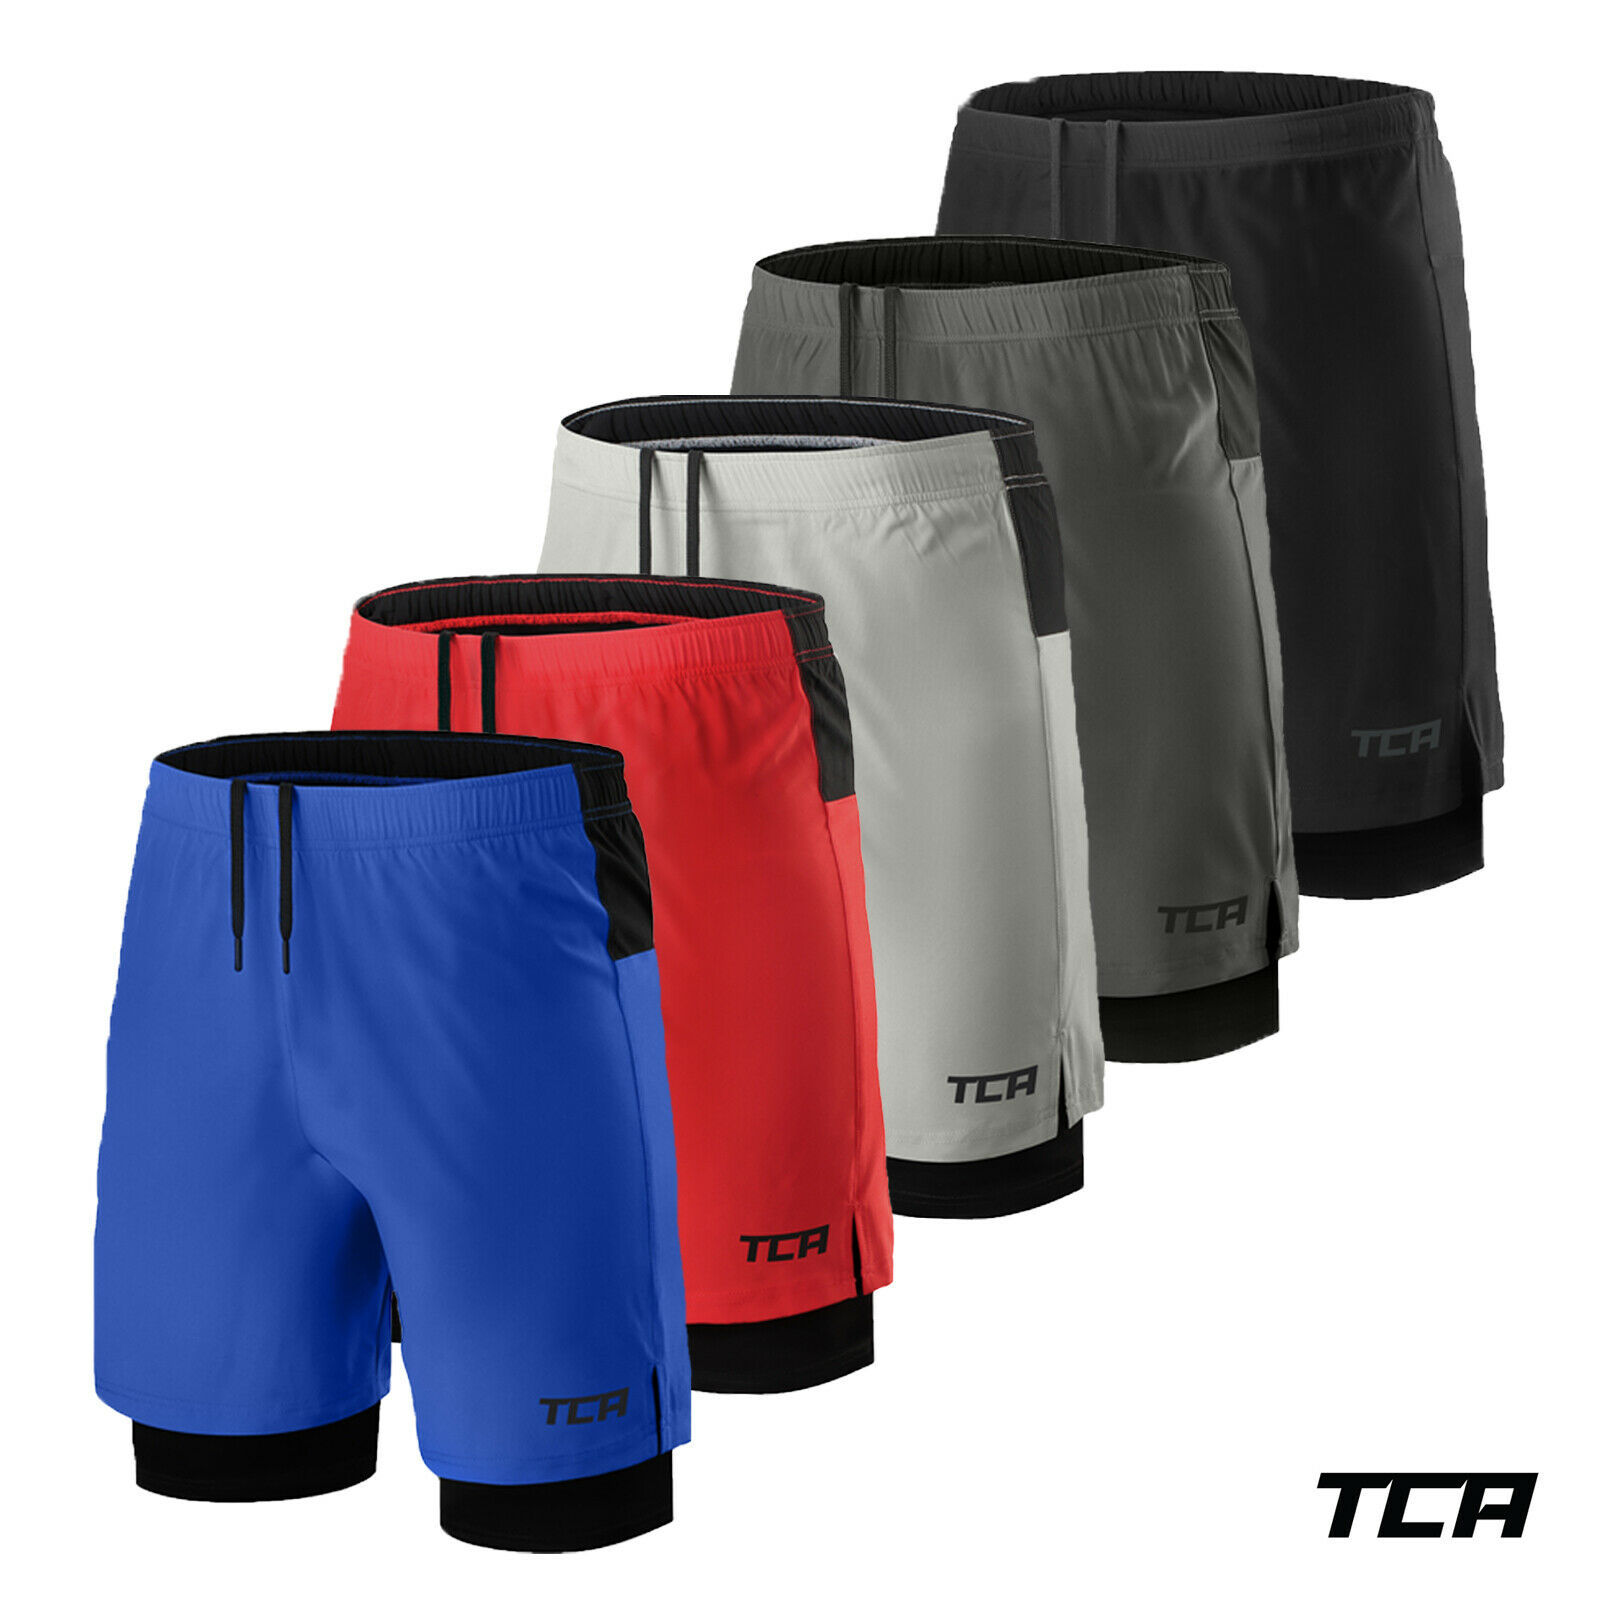 TCA Mens Ultra 2 in 1 Run Training Shorts with Compression Short